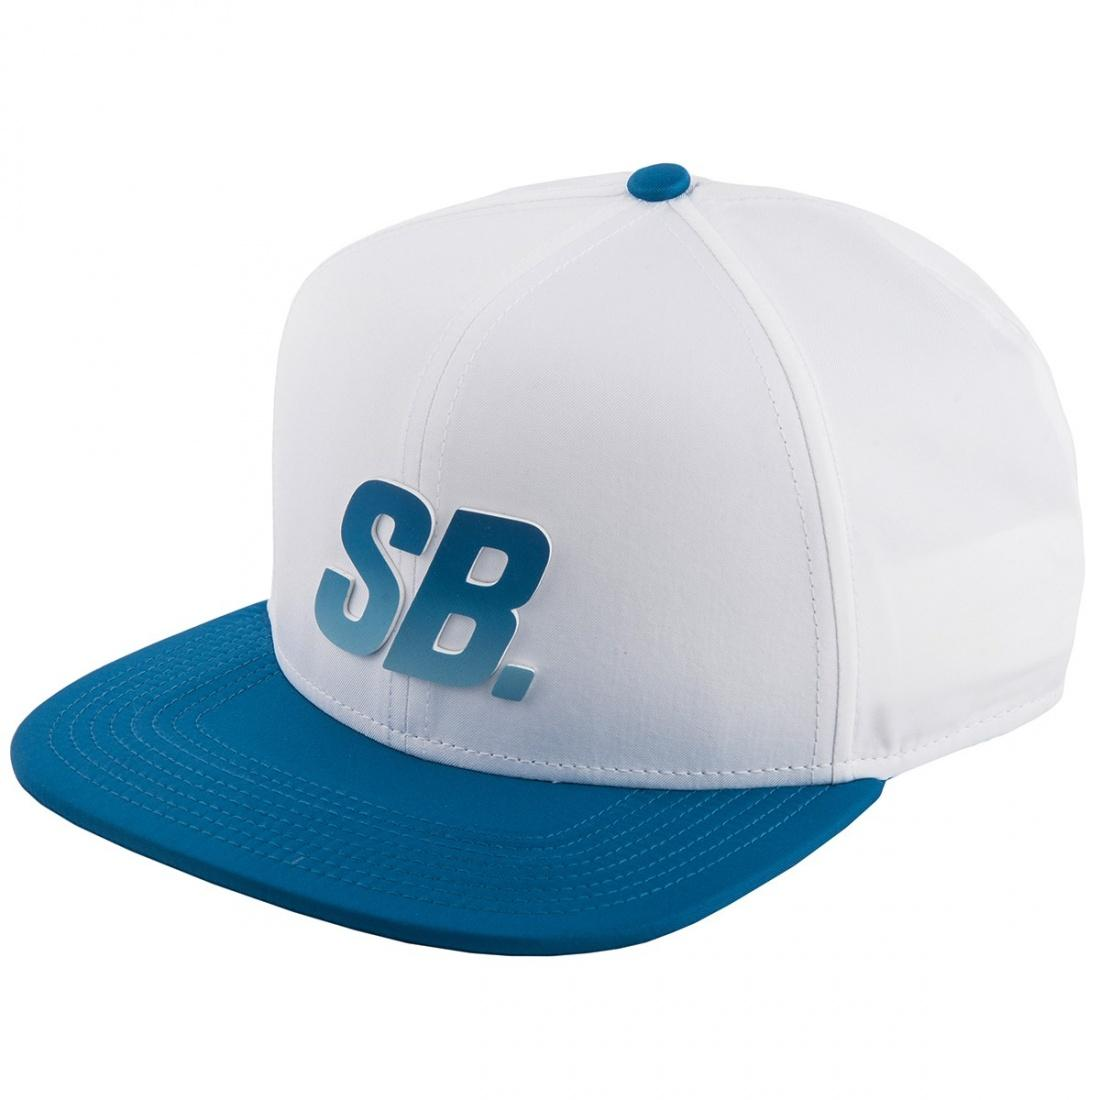 Nike SB Кепка Nike SB Fade Dri-Fit White/Blue, , , mini handheld rf